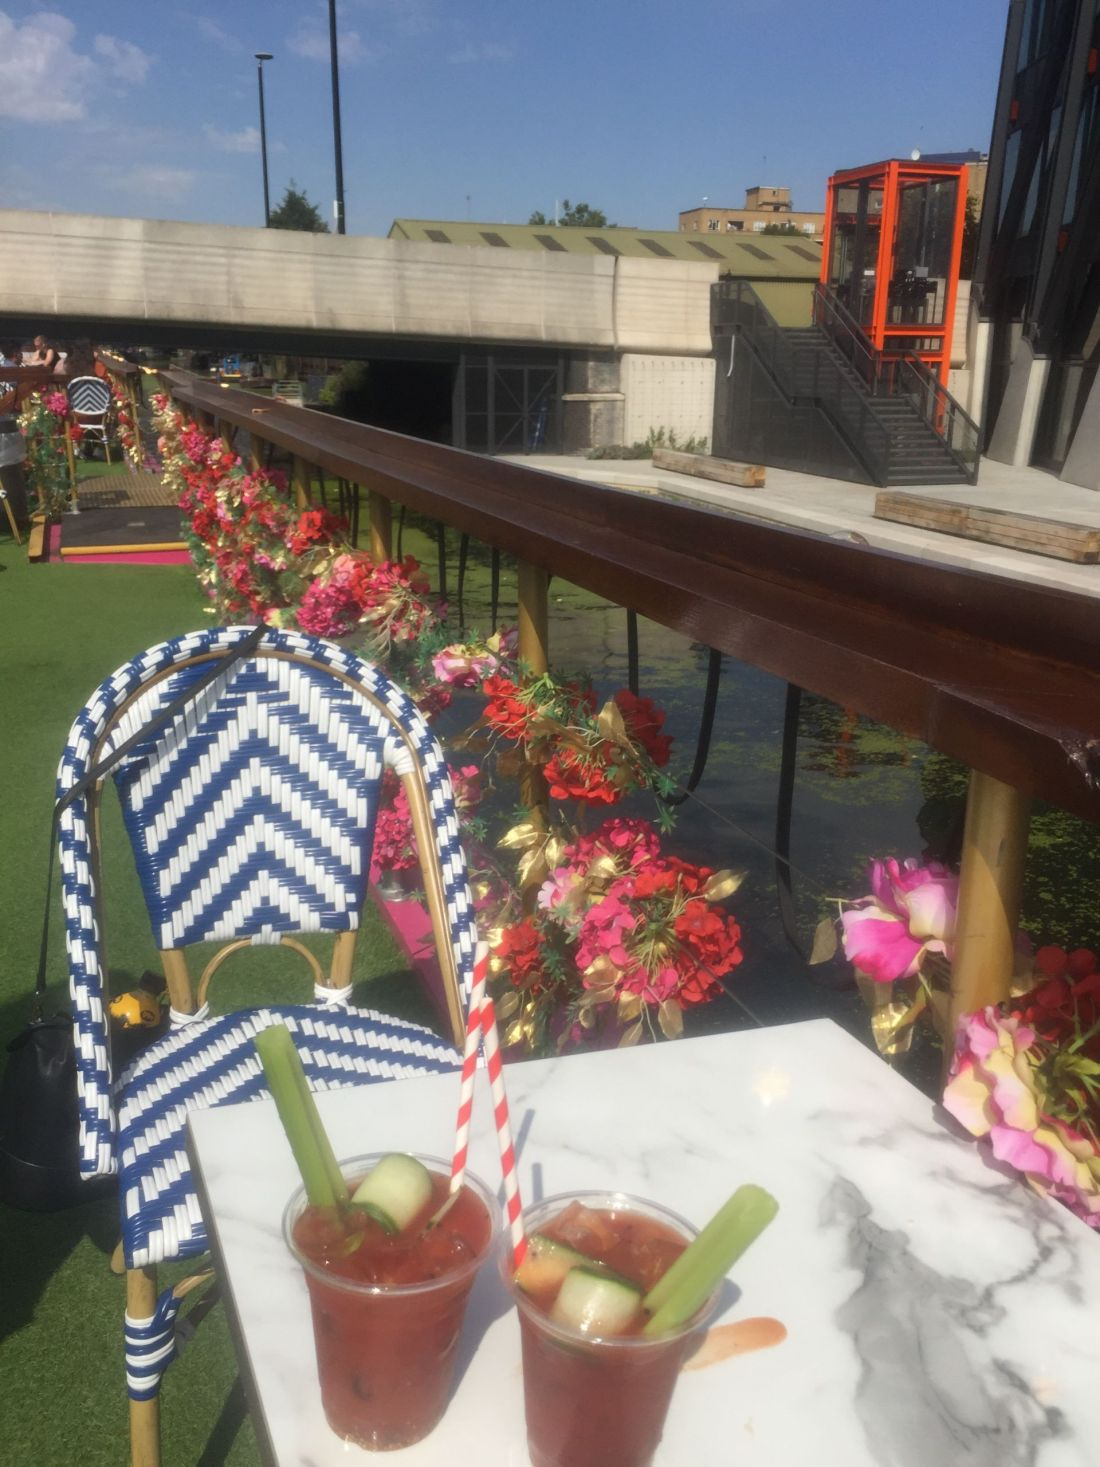 Brunch on a barge in London